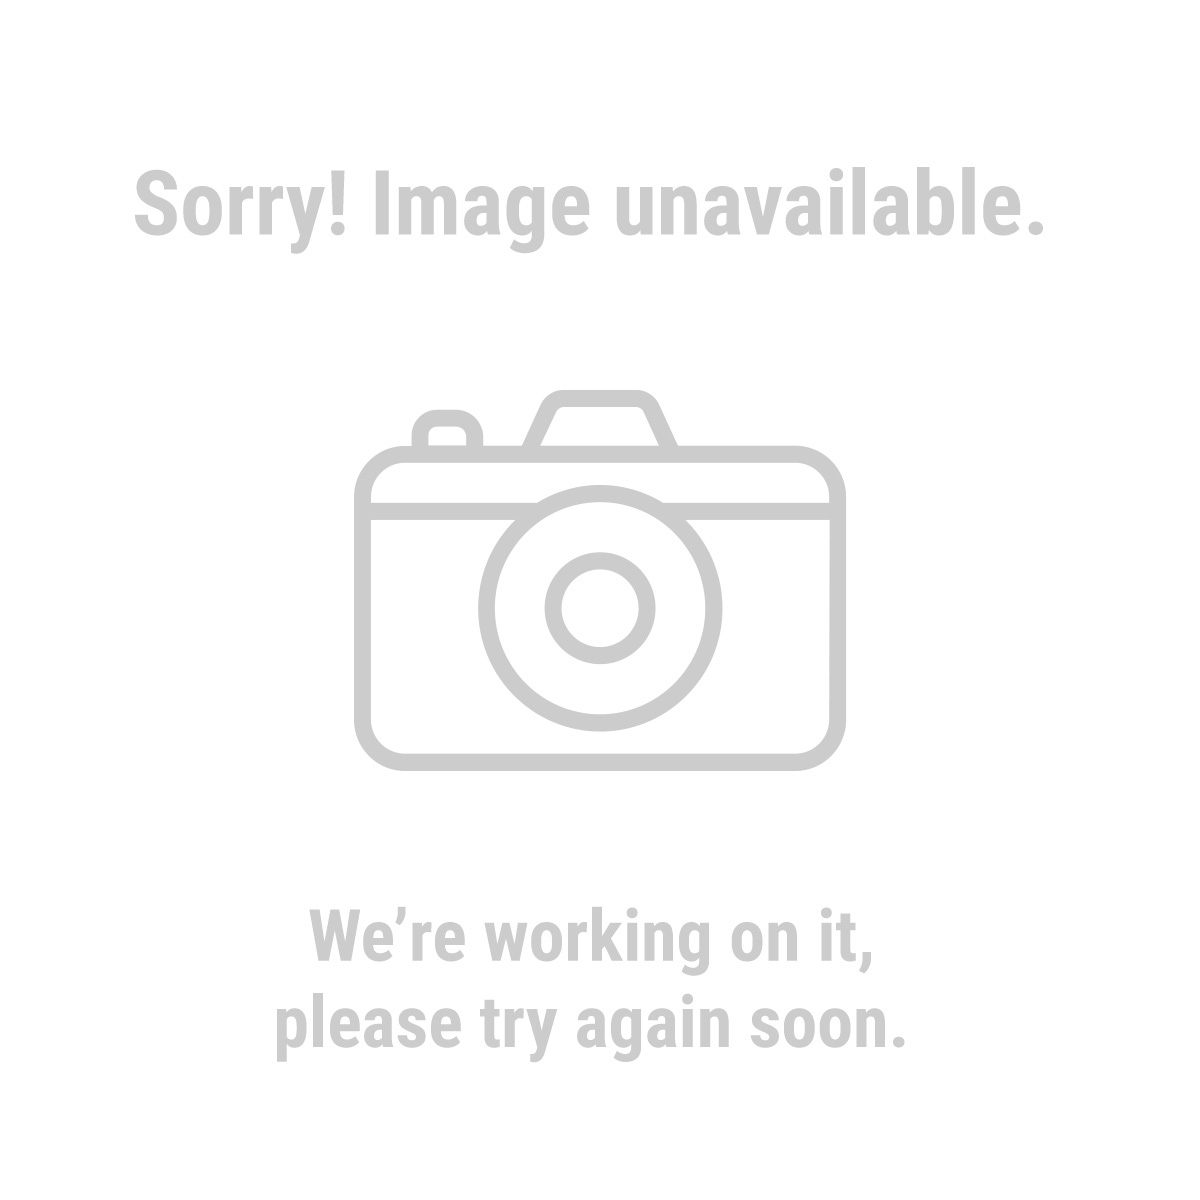 Central Pneumatic 61915 5 Piece Brass Industrial/Milton Quick Connect Starter Set